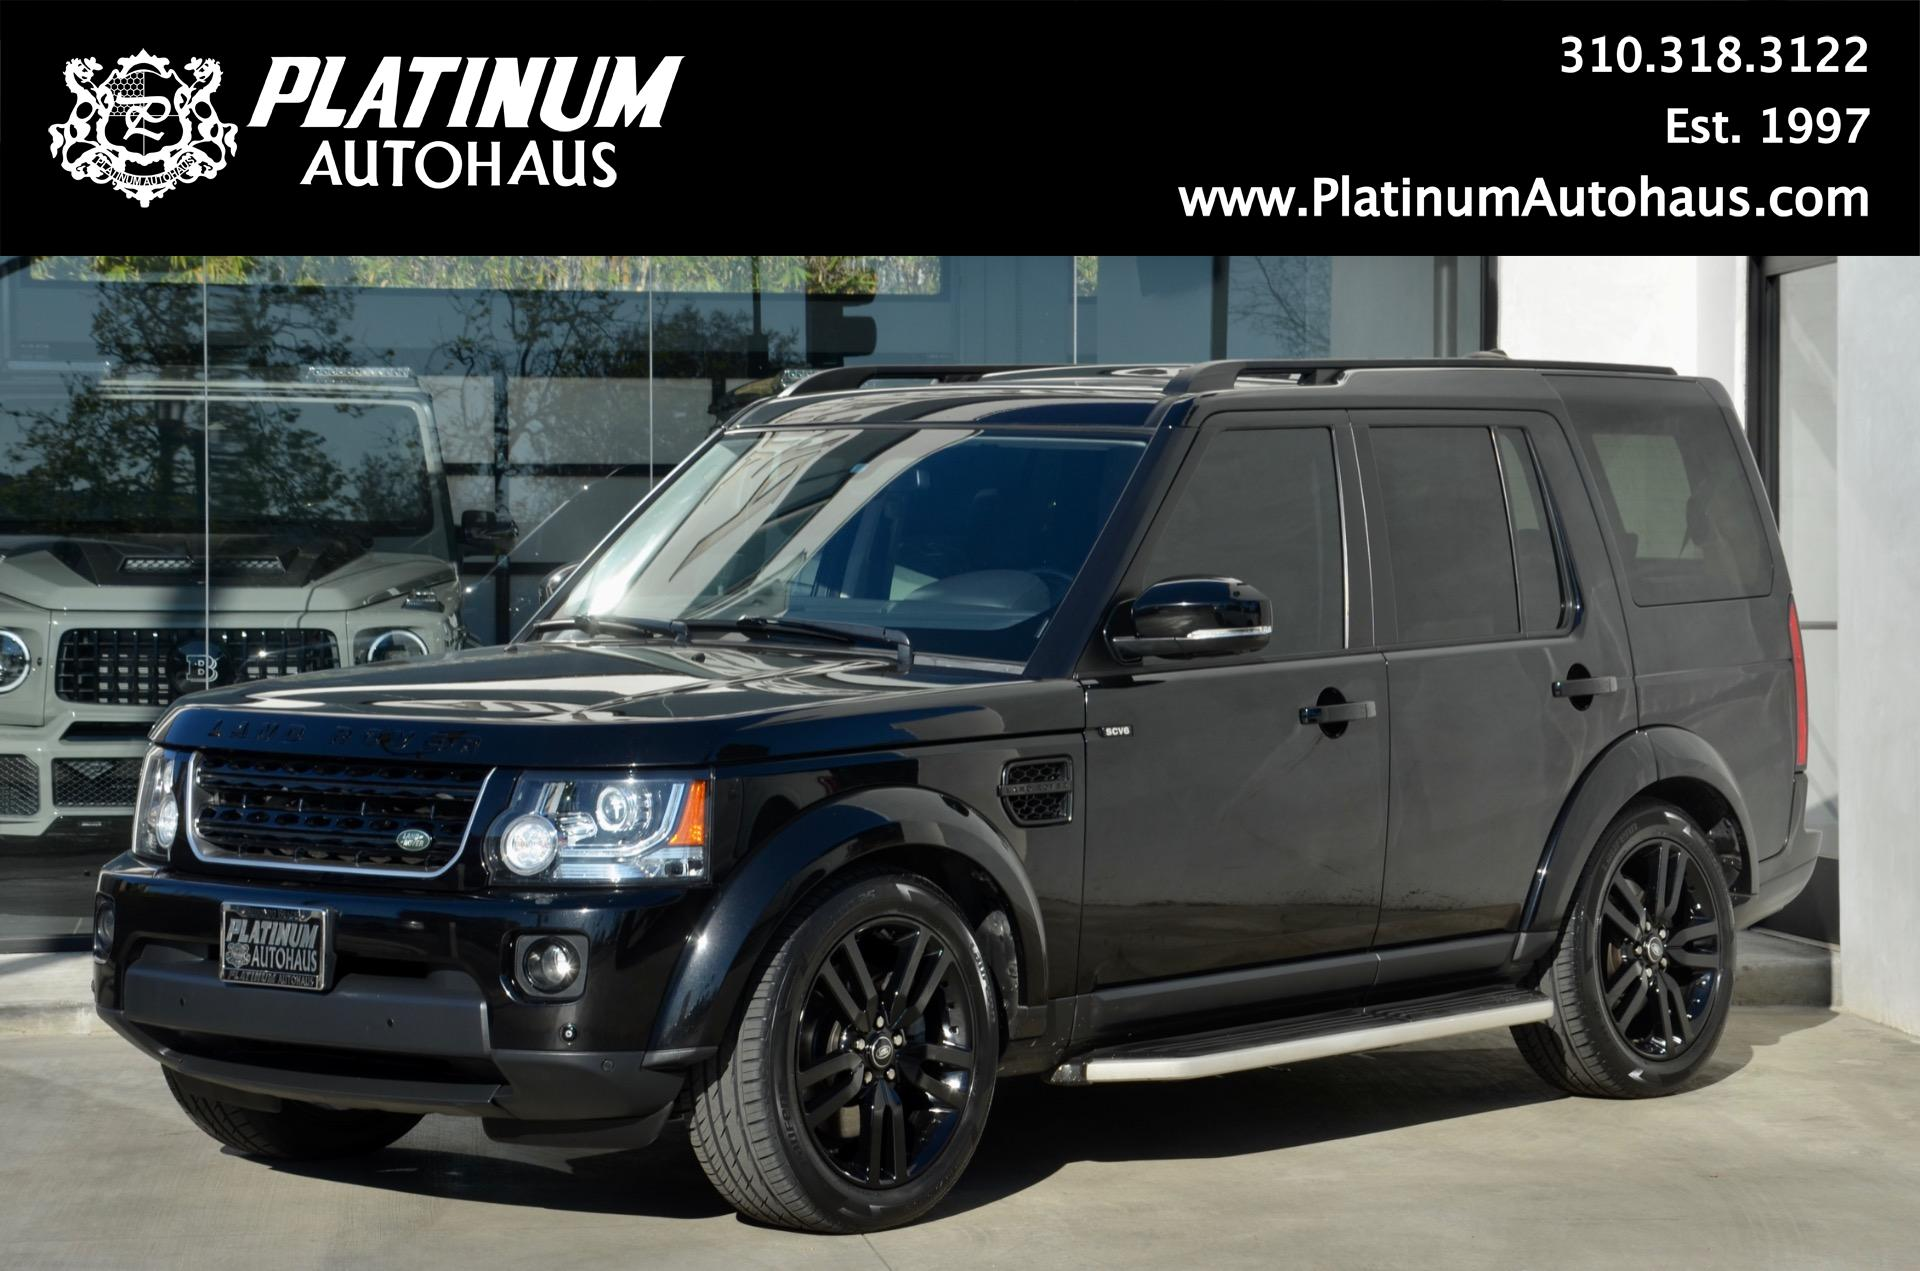 2015 land rover lr4 hse lux stock 6141 for sale near redondo beach ca ca land rover dealer - Land rover garage near me ...